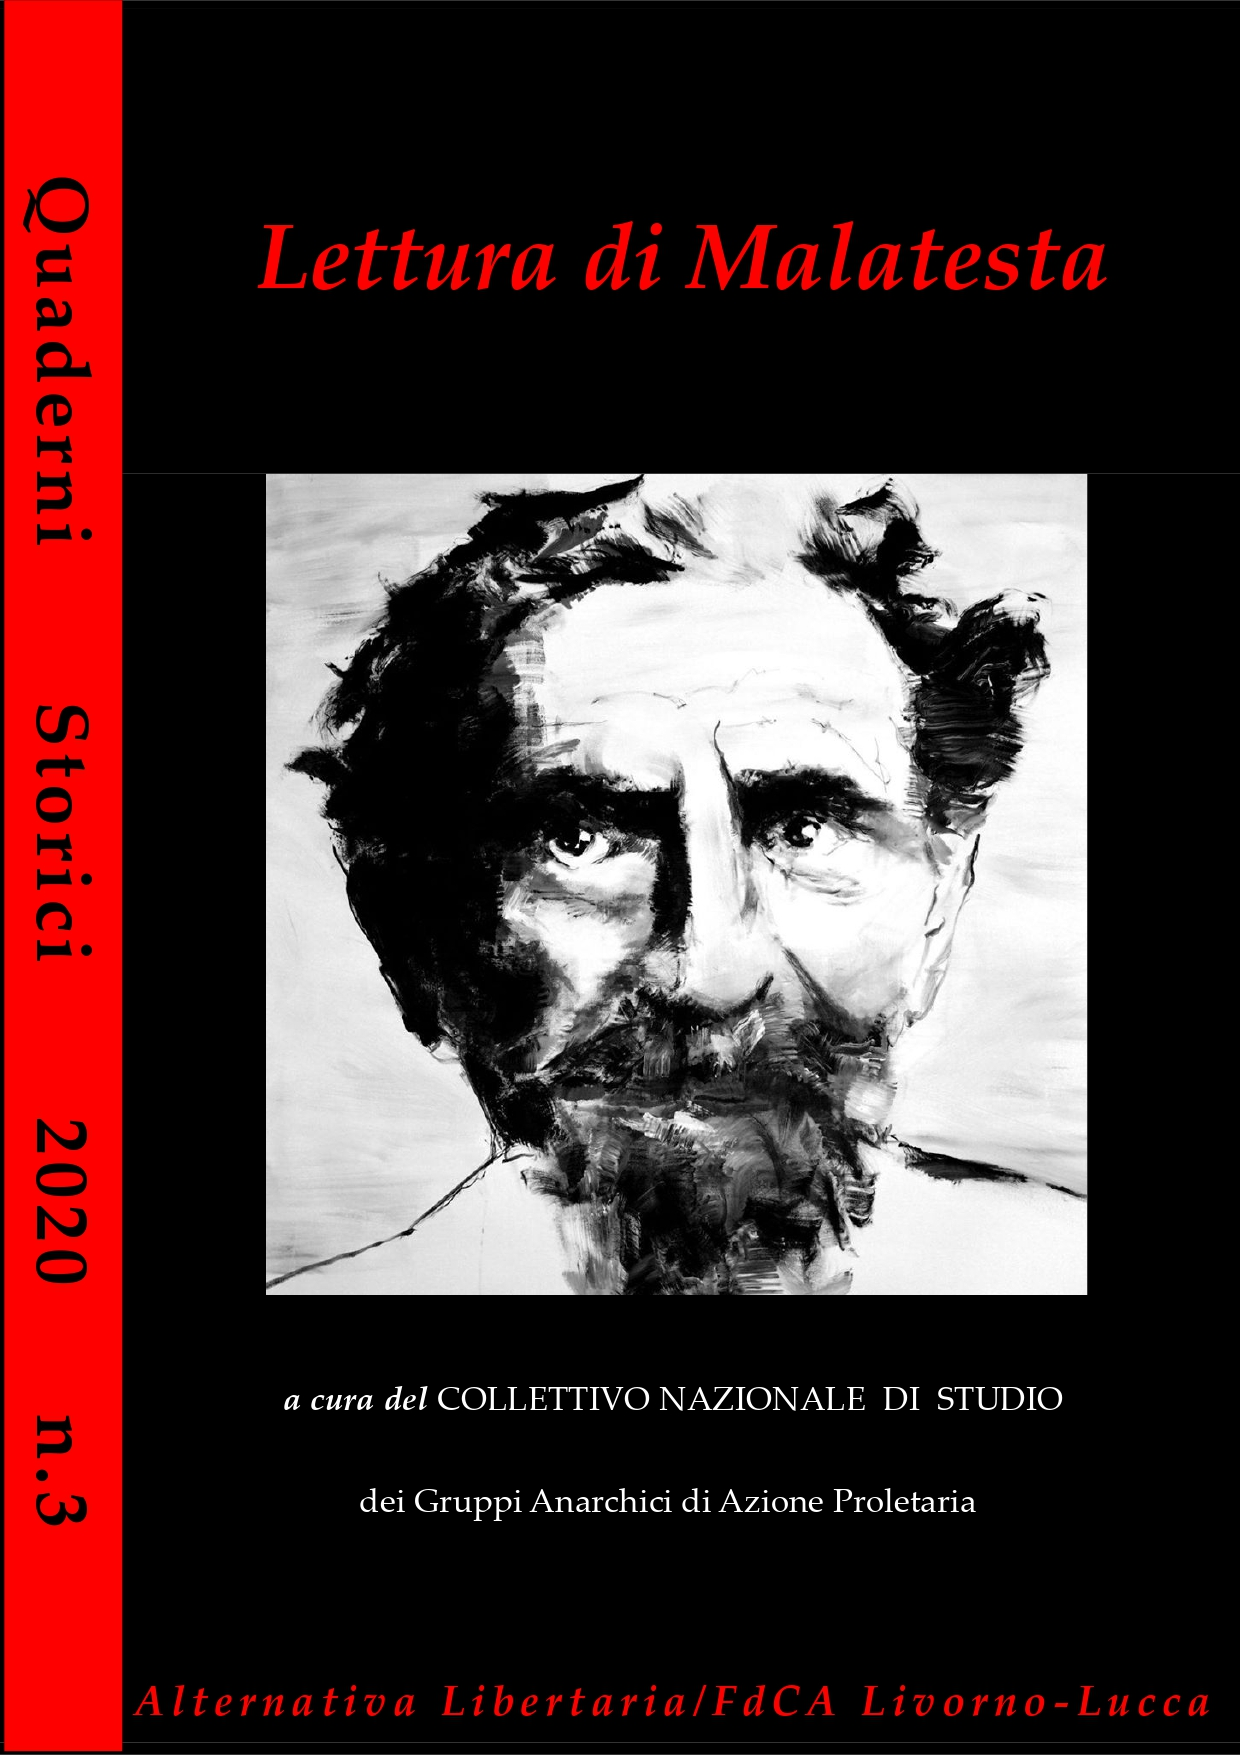 lettura Malatesta